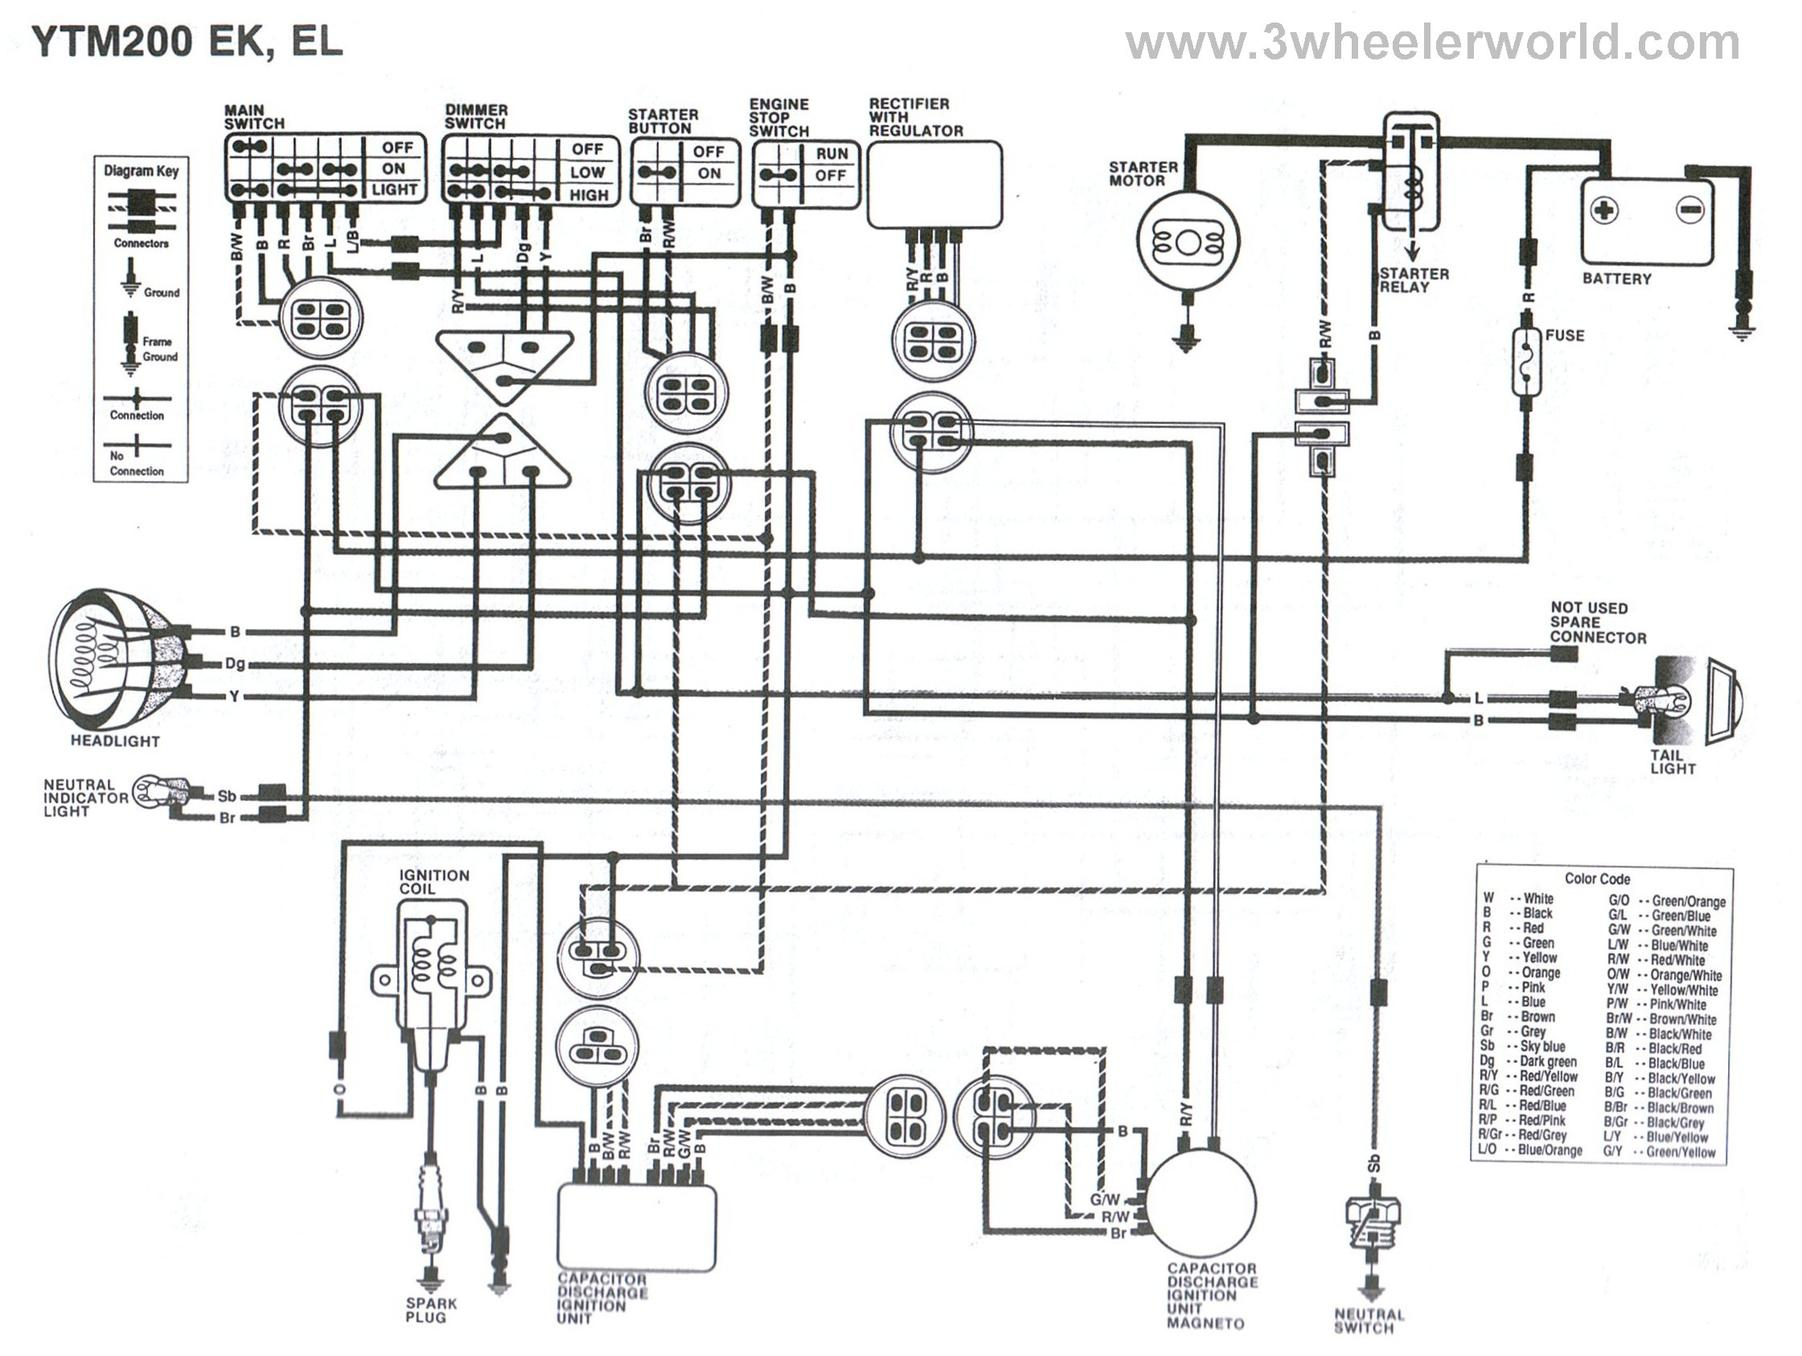 350 Moto 4 Wiring Diagram | Wiring Liry Kawasaki Bayou Wiring Harness on